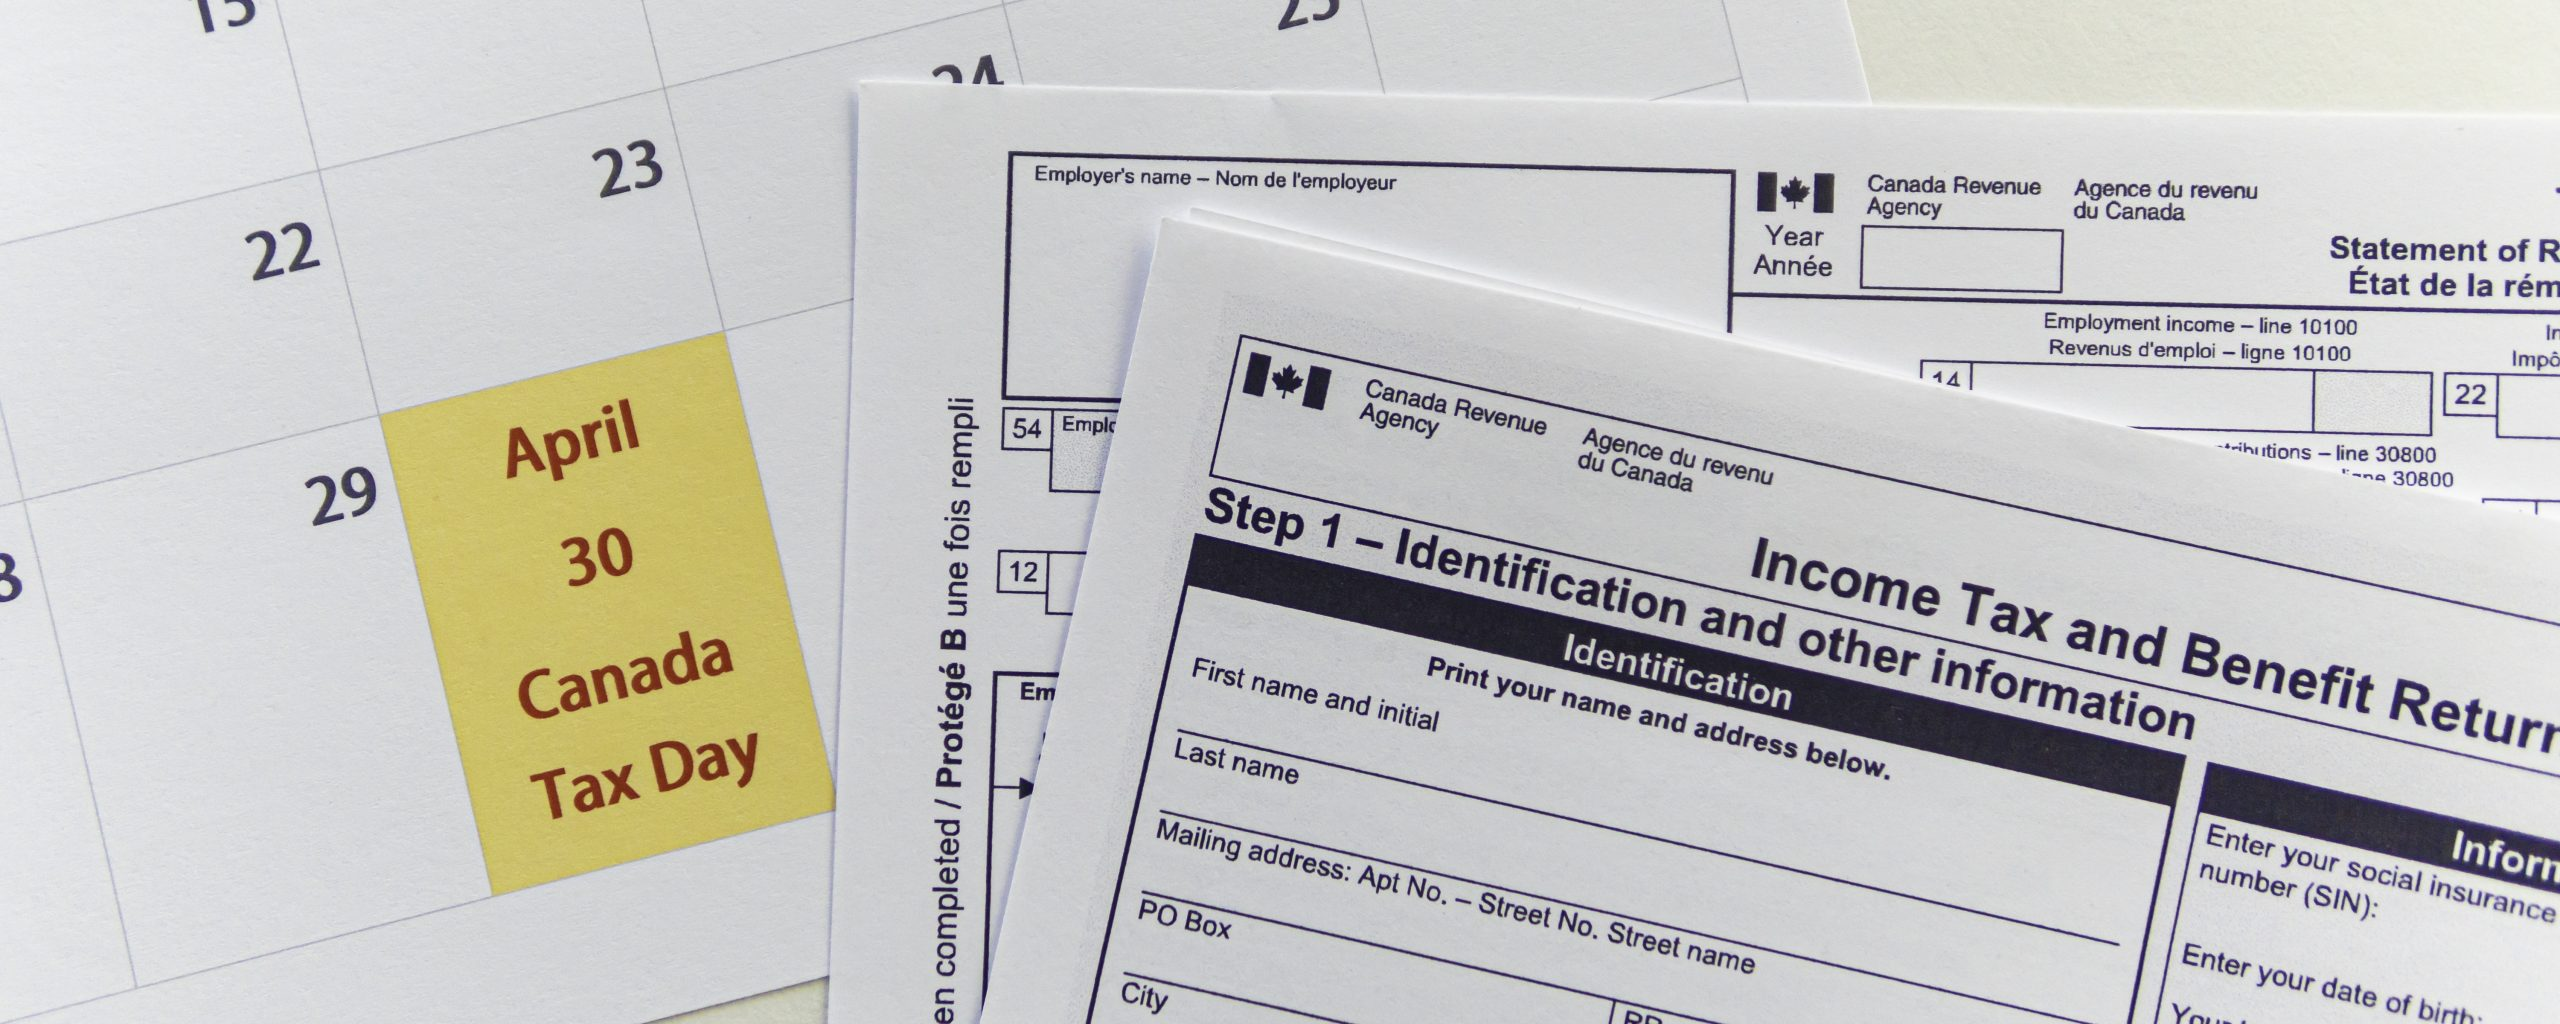 Canada Tax forms with Calender showing Canada Tax day - April 30